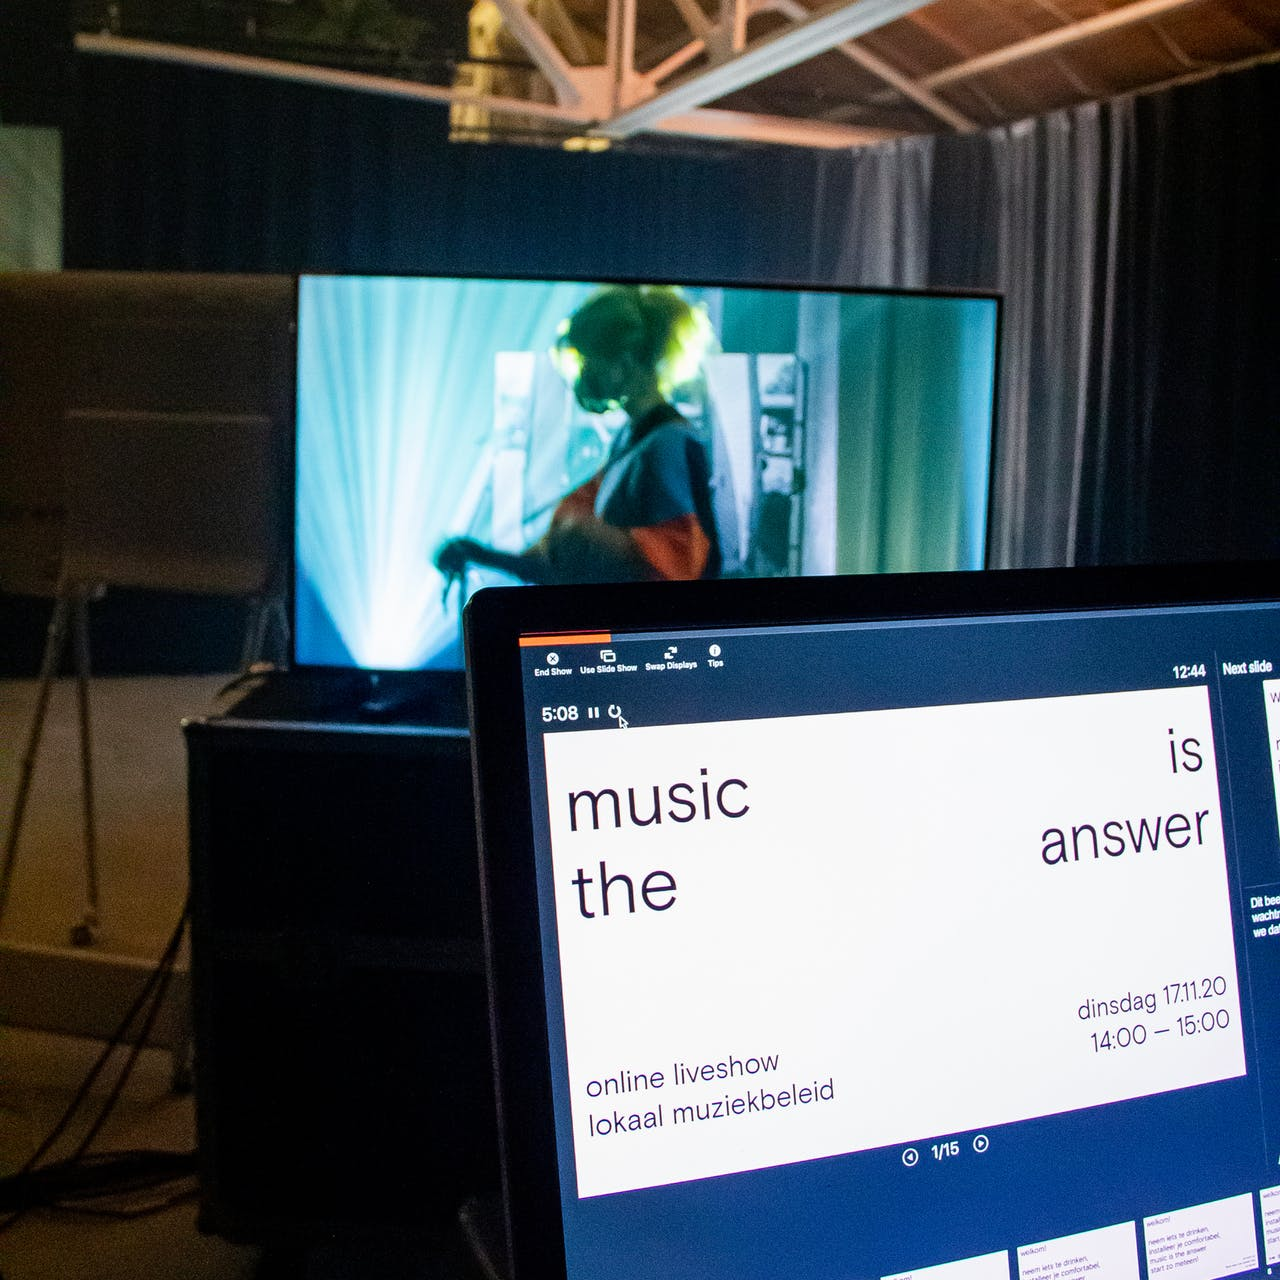 behind the scenes @ launch 'music is the answer'